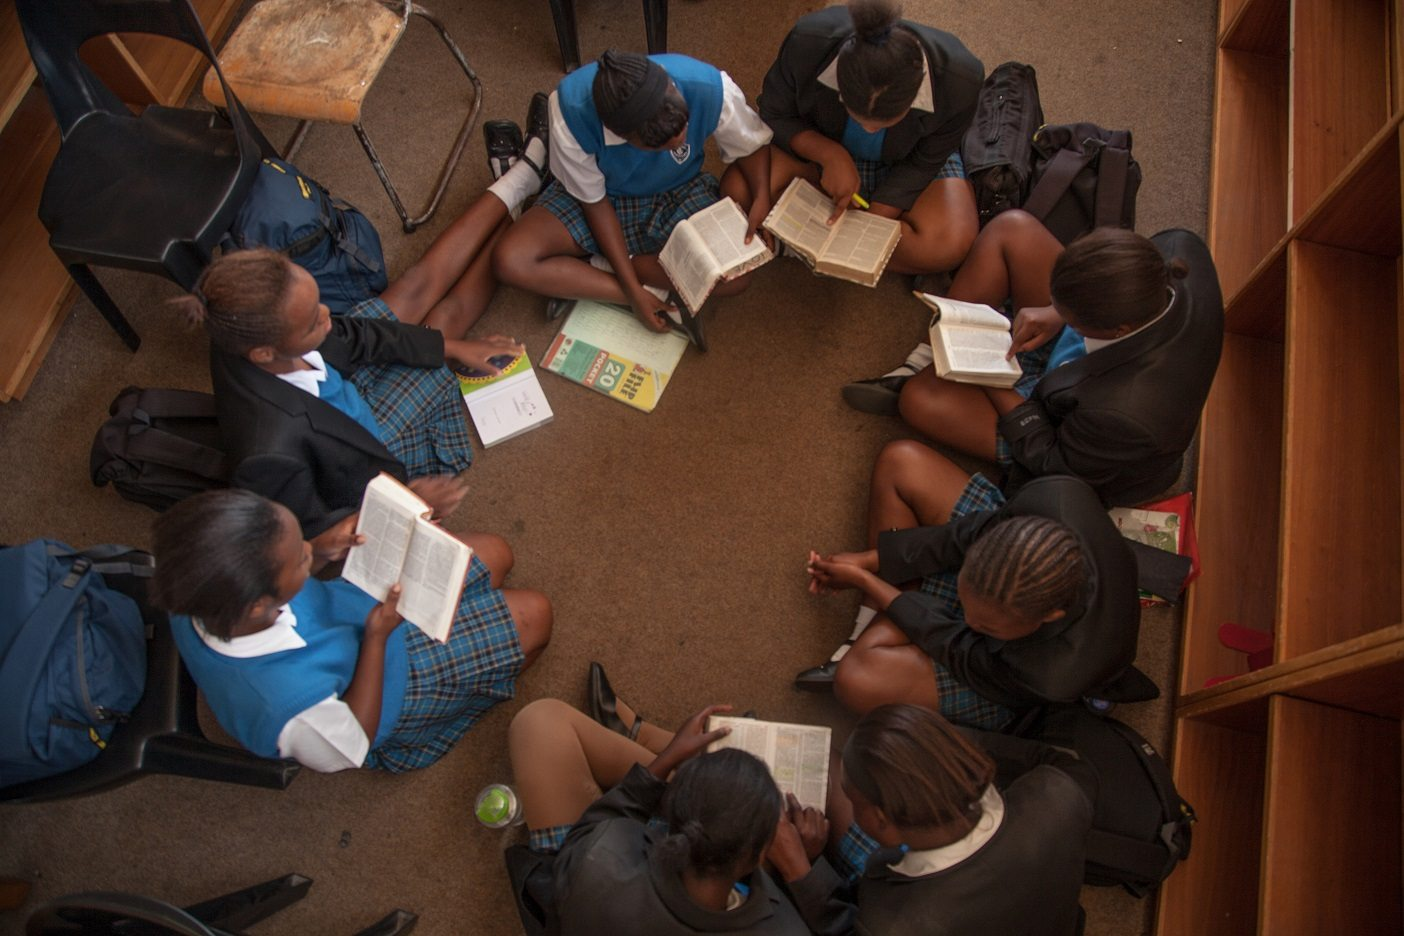 Learners of Immaculata High School utilize the library which Mimi and her team are working on revamping.